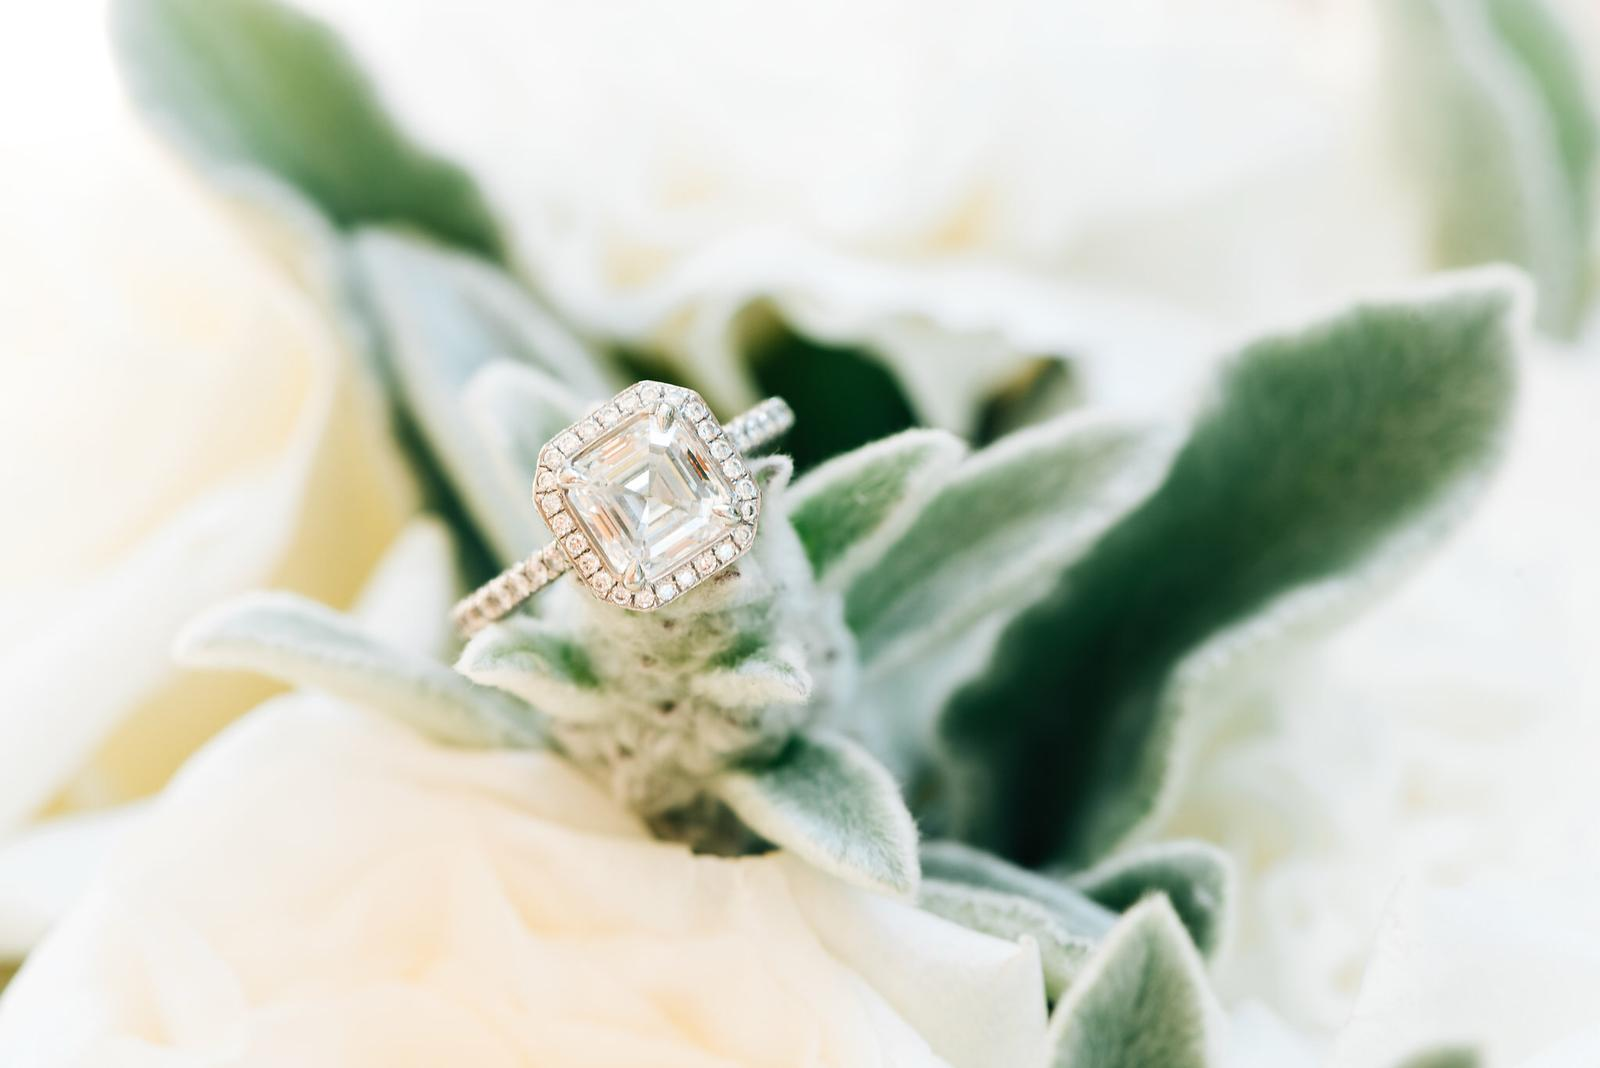 Bridal Jewellery - Please enjoy our gallery of beautiful custom-designed diamond jewellery we have created in collaboration with our clients. Please get in touch for more information or if you would like to make a special piece for yourself or a loved one.